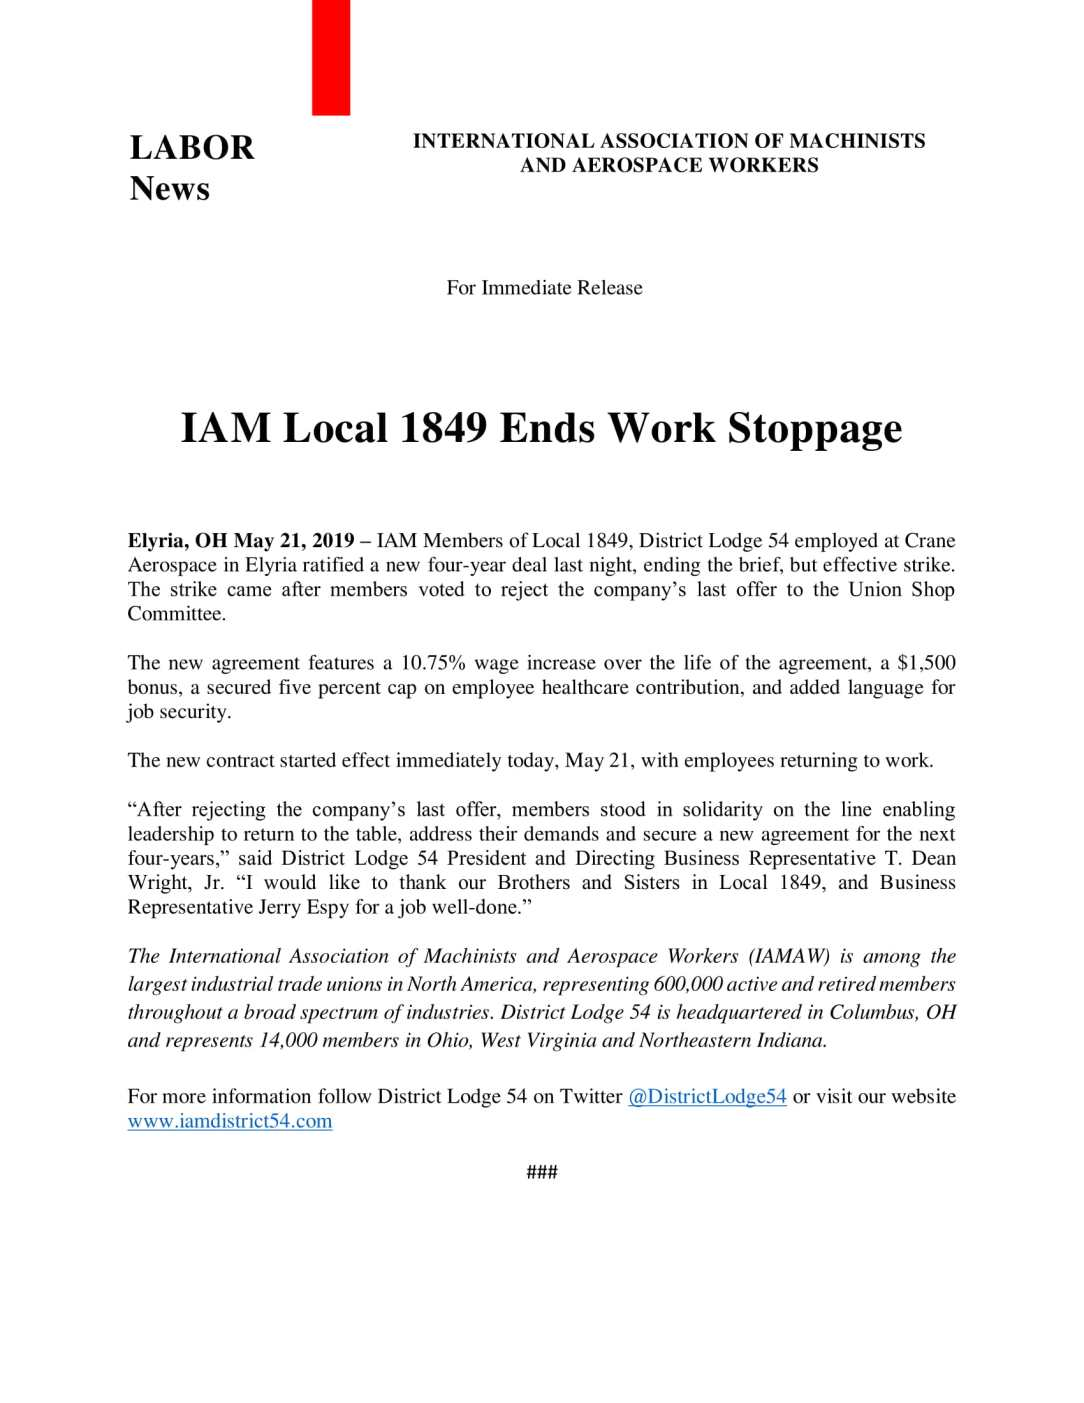 IAM Local 1849 Ends Work Stoppage-1.jpg